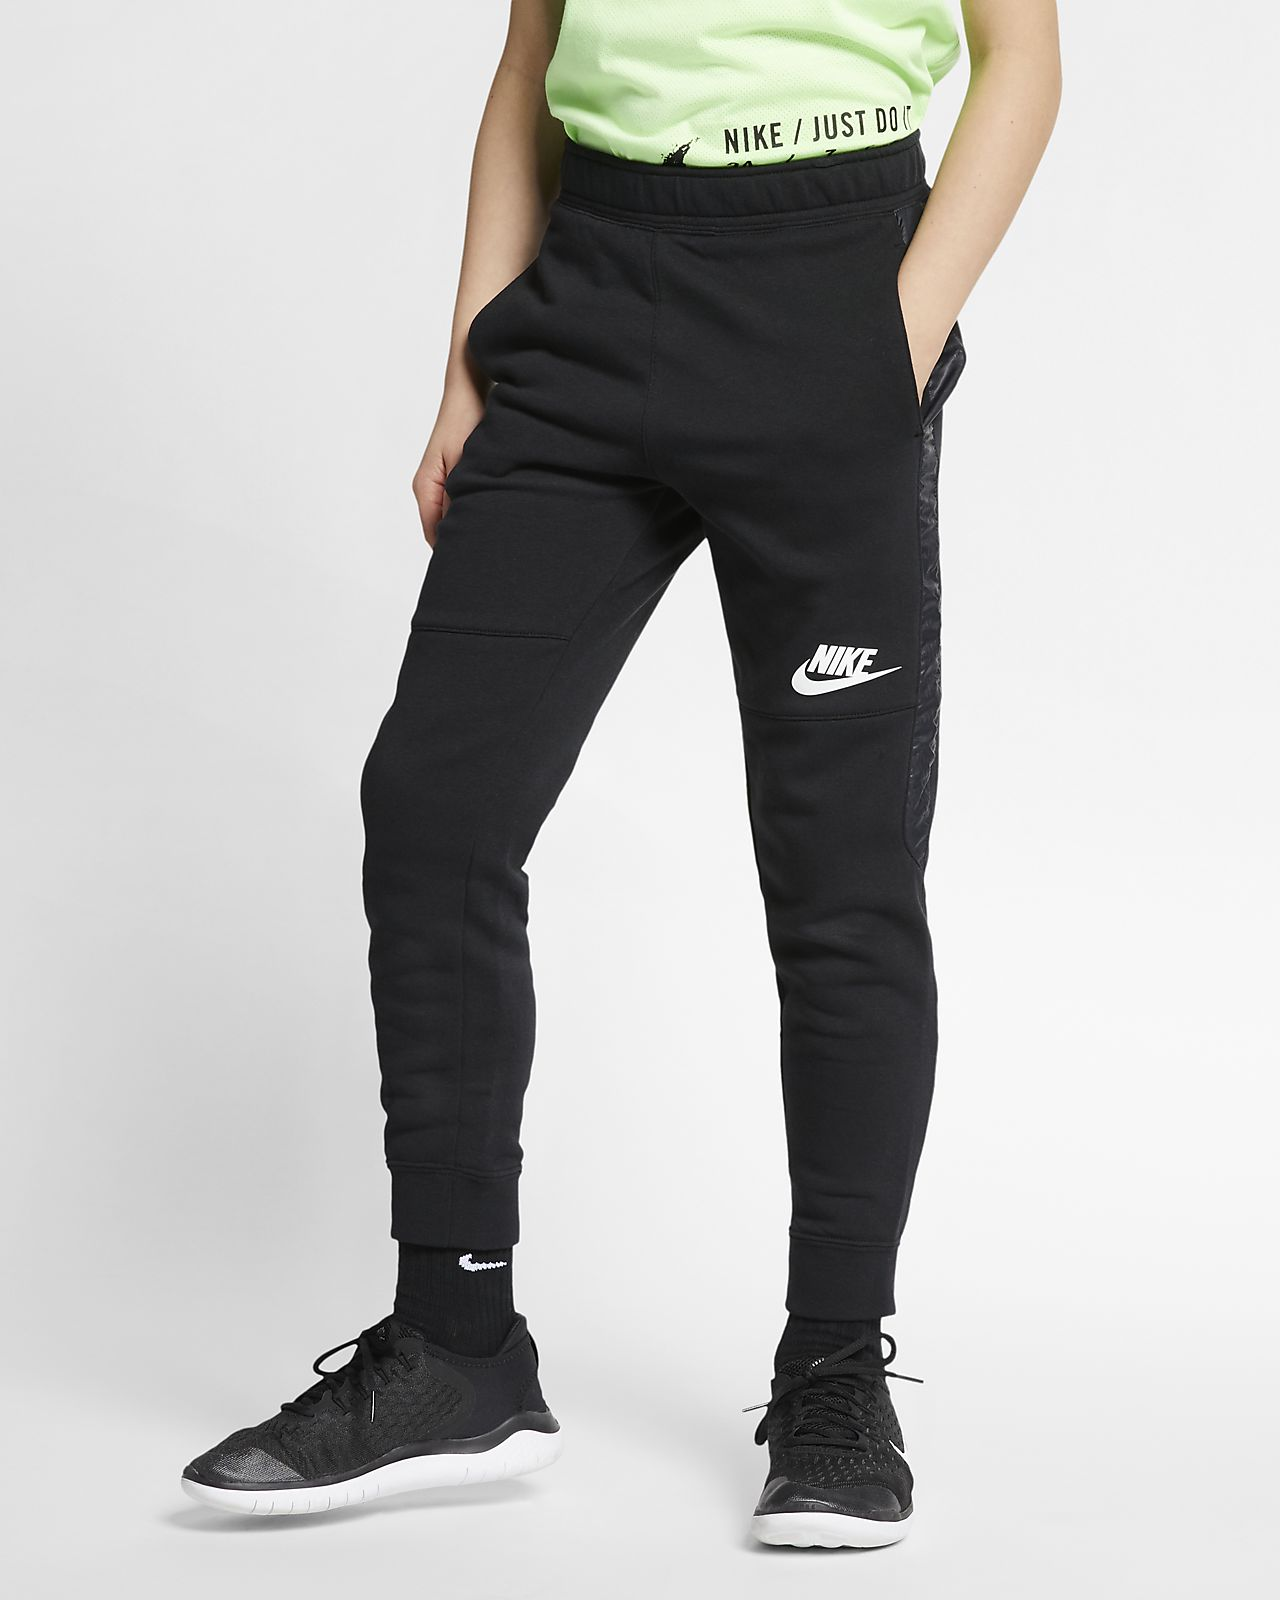 presenting exclusive shoes aliexpress Pantalon de jogging Nike Sportswear pour Enfant plus âgé